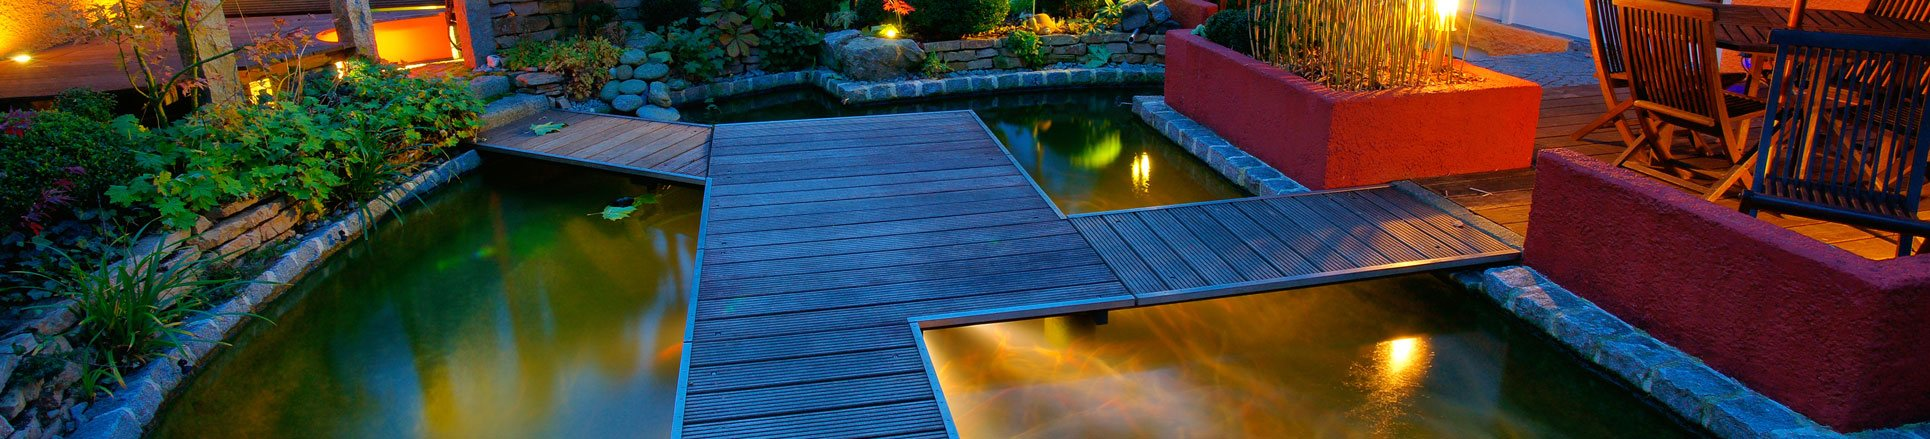 San Diego Water Feature Installation | San Diego Landscape Lighting & Led Lighting